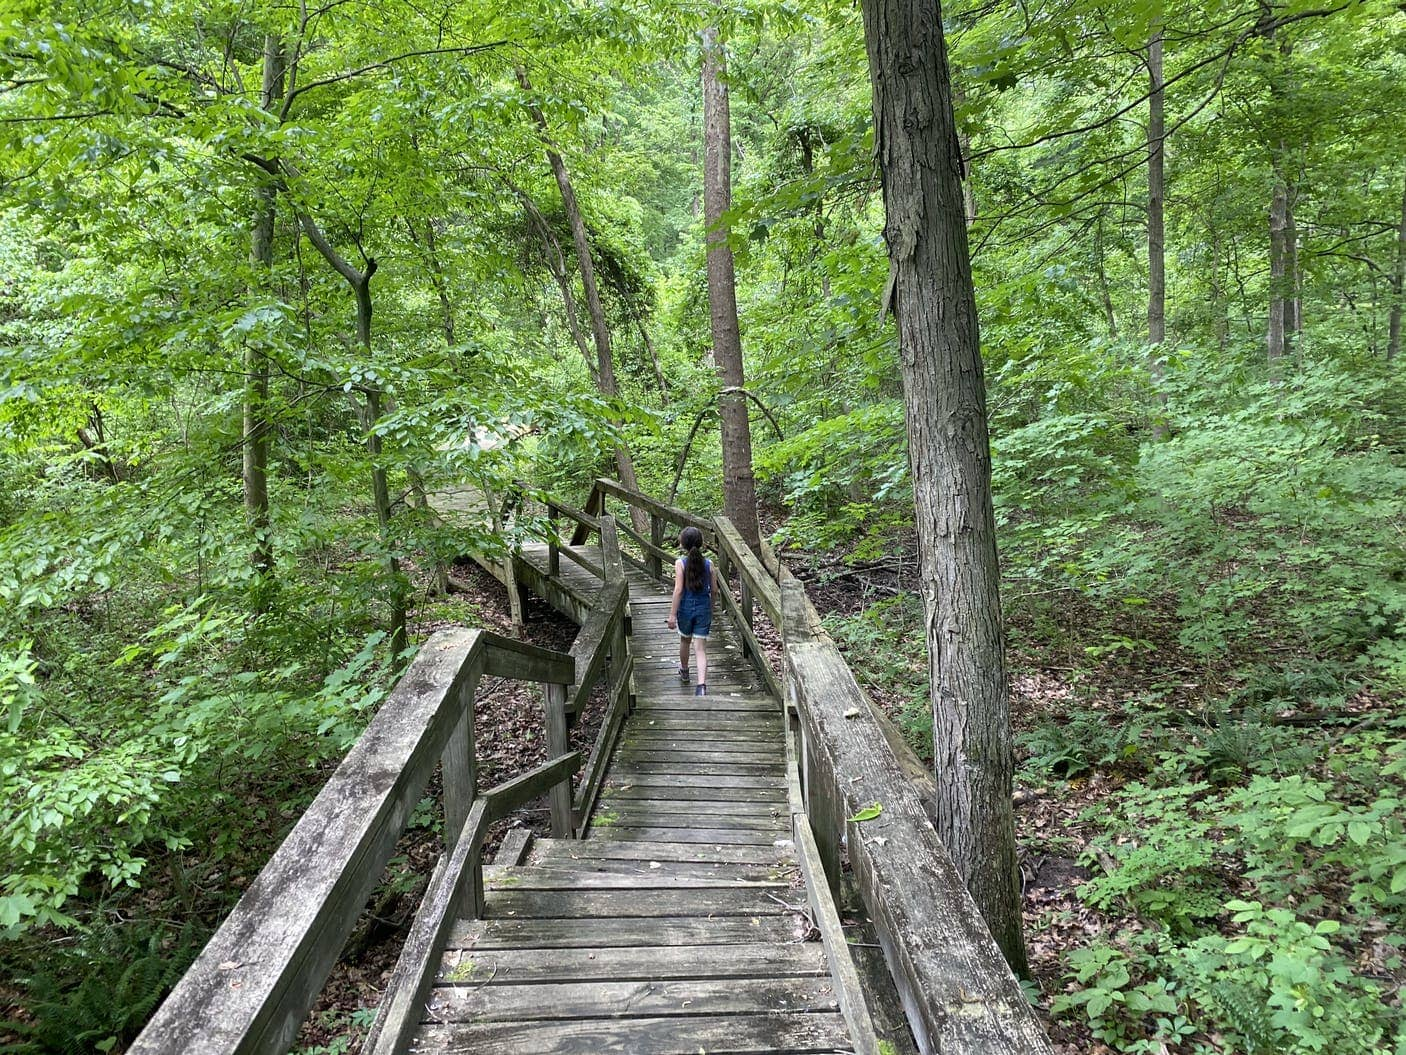 Young girl walking on wooden boardwalk through the woods.